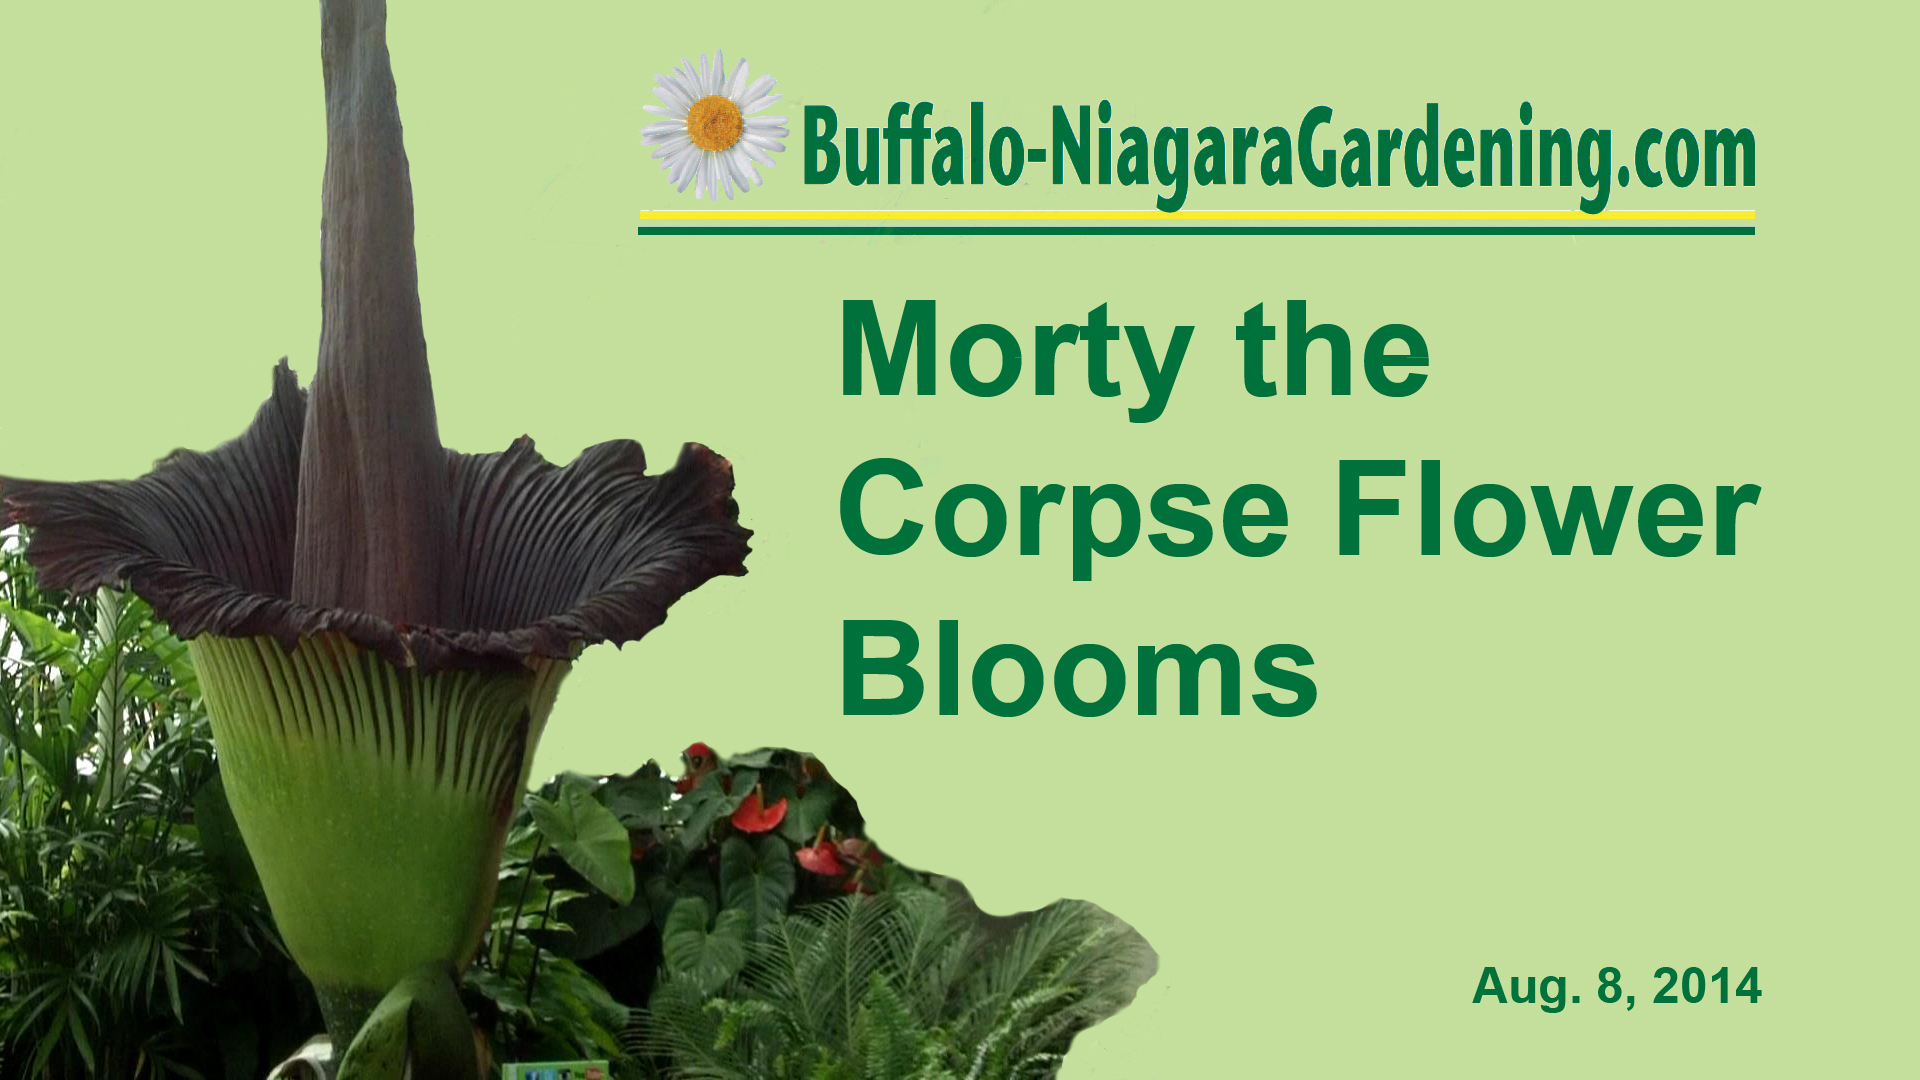 Morty the corpse flower bloomed